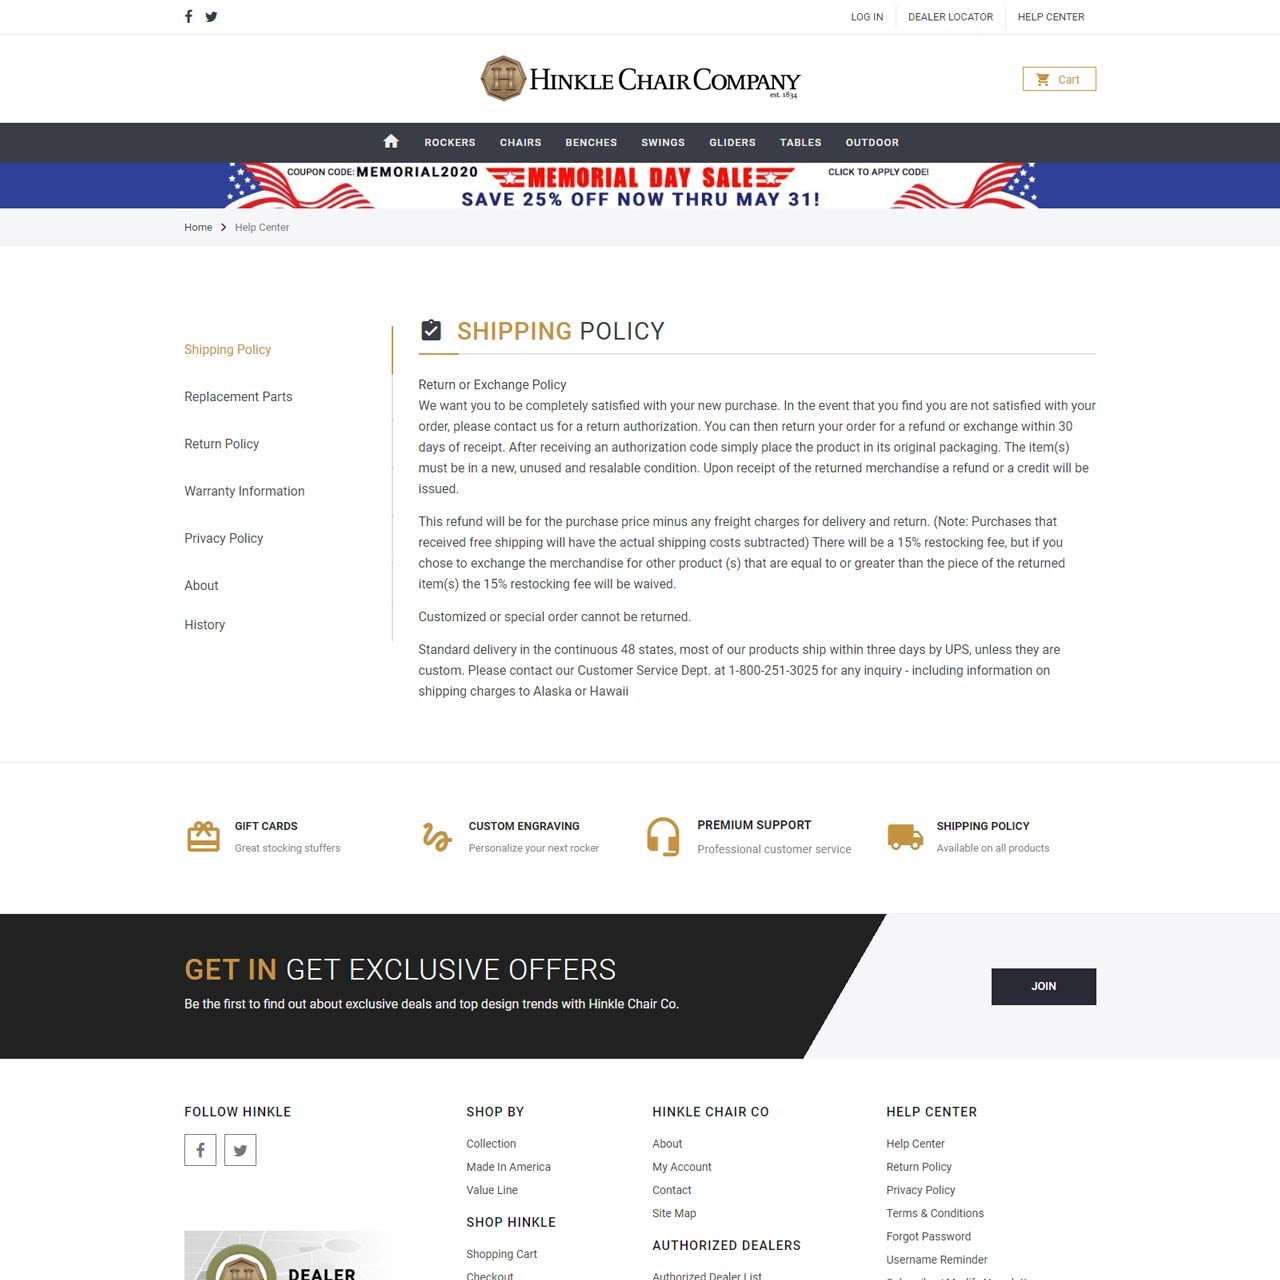 Shipping Policy Page